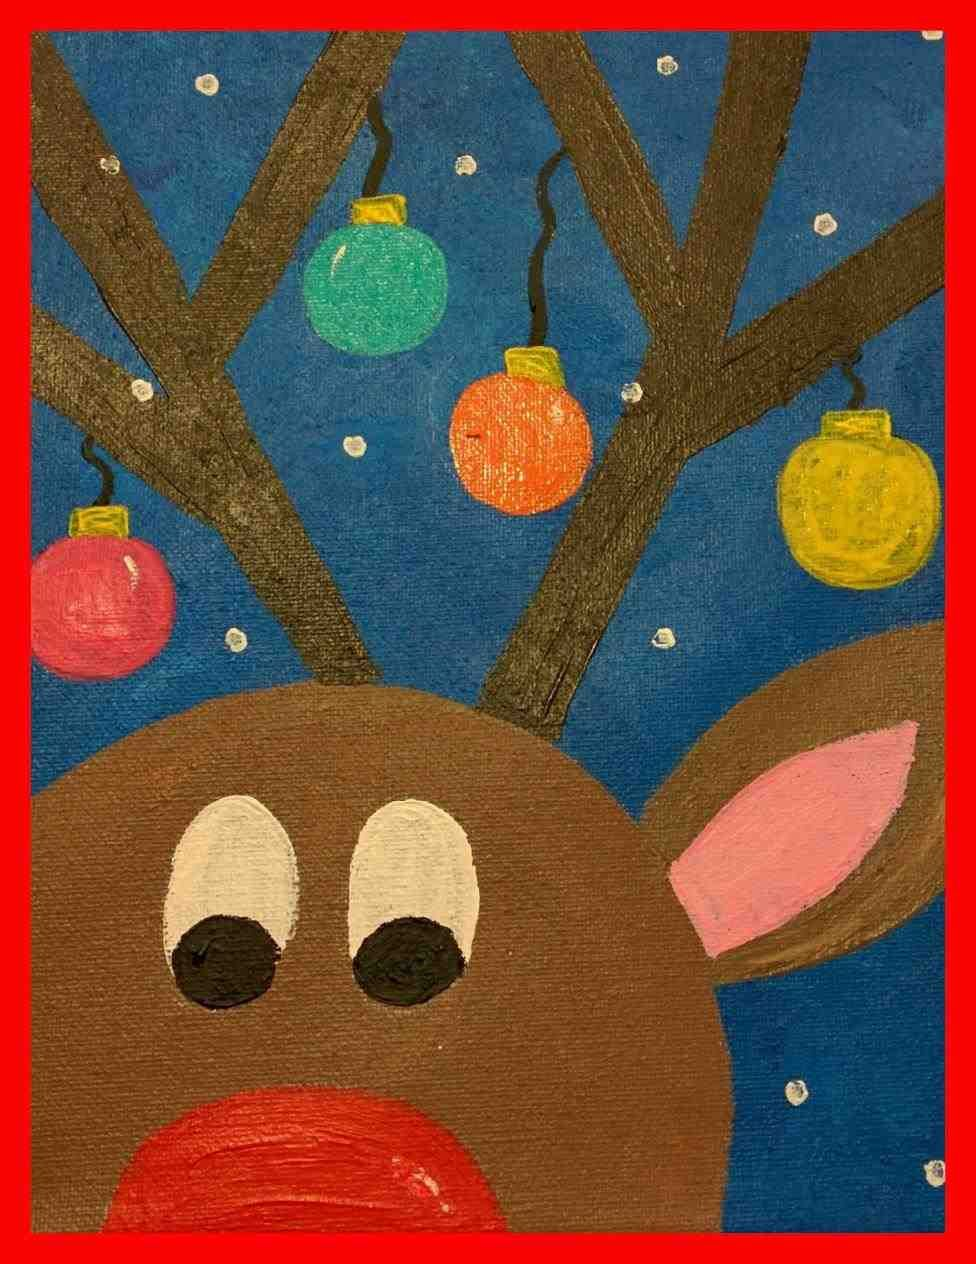 Google Search S For Kids Owl Christmas Painting Ideas On Canvas Easy Acrylic Abstract Landscape Car 976x1264